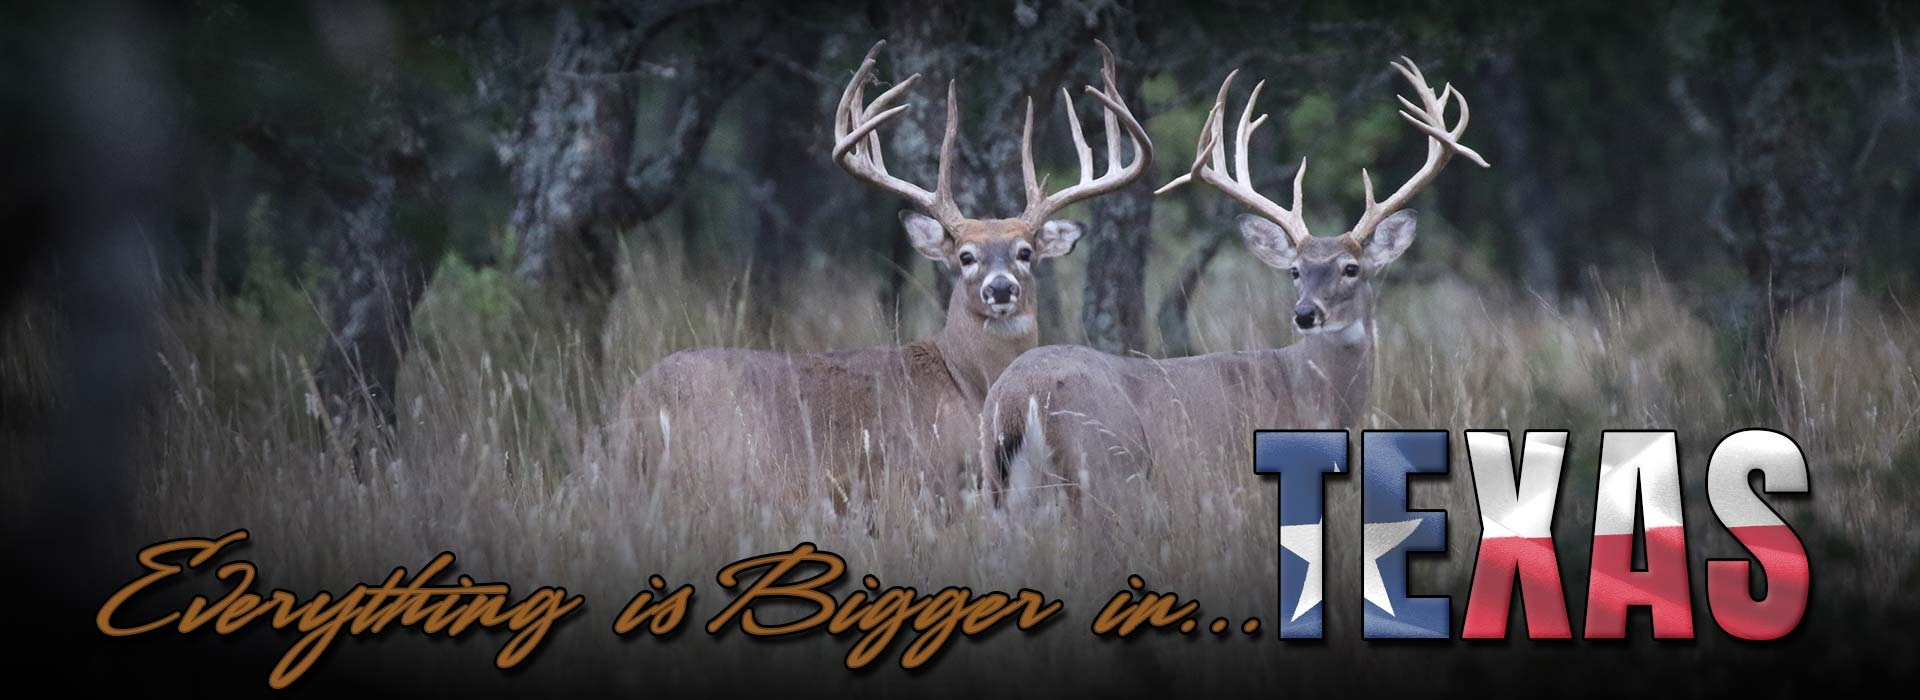 HighPoint Ranch - Texas Hunting Outfitters near Austin & San